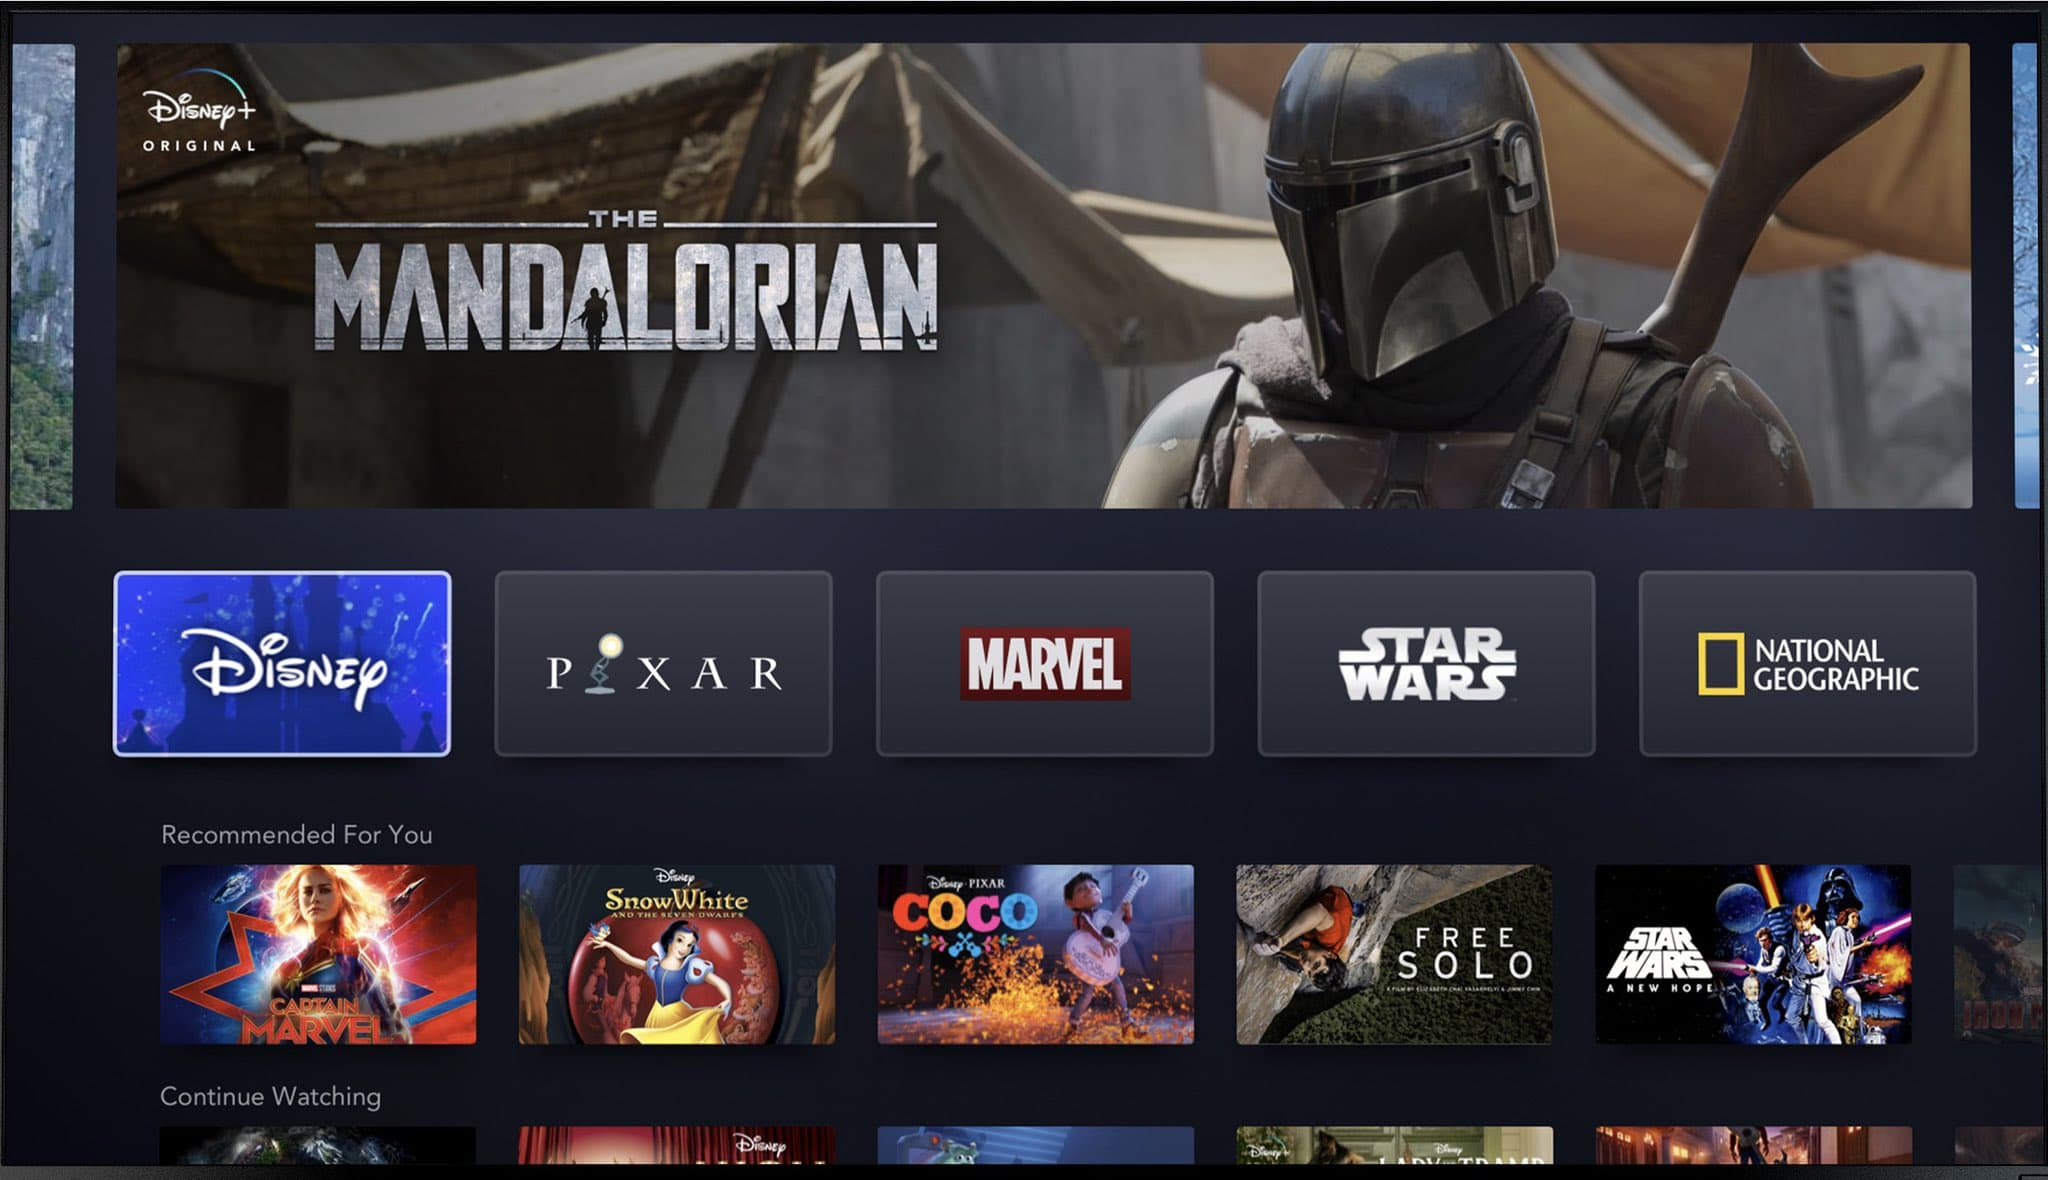 Watch all Disney movies (Pixar, Star Wars, Marvel) and series for $6.99 per month